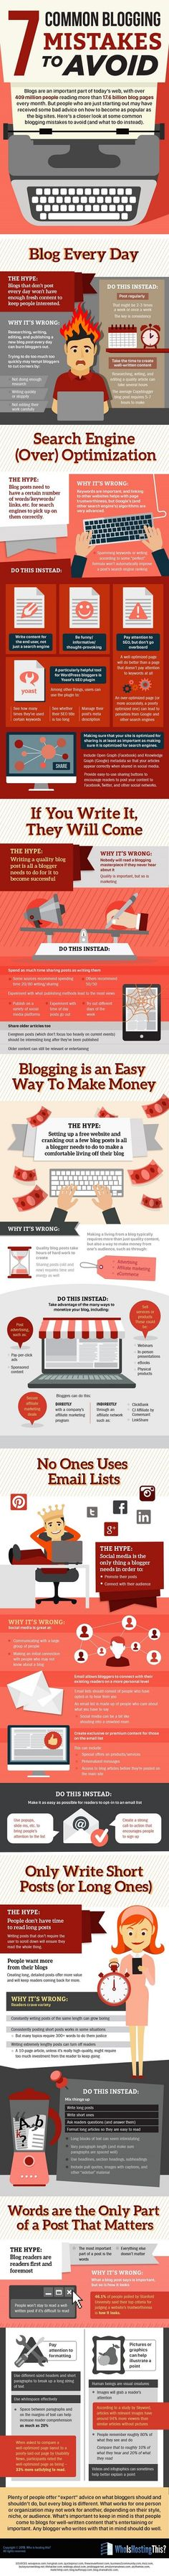 Content - Seven Common Blogging Mistakes to Avoid [Infographic] : MarketingProfs Article